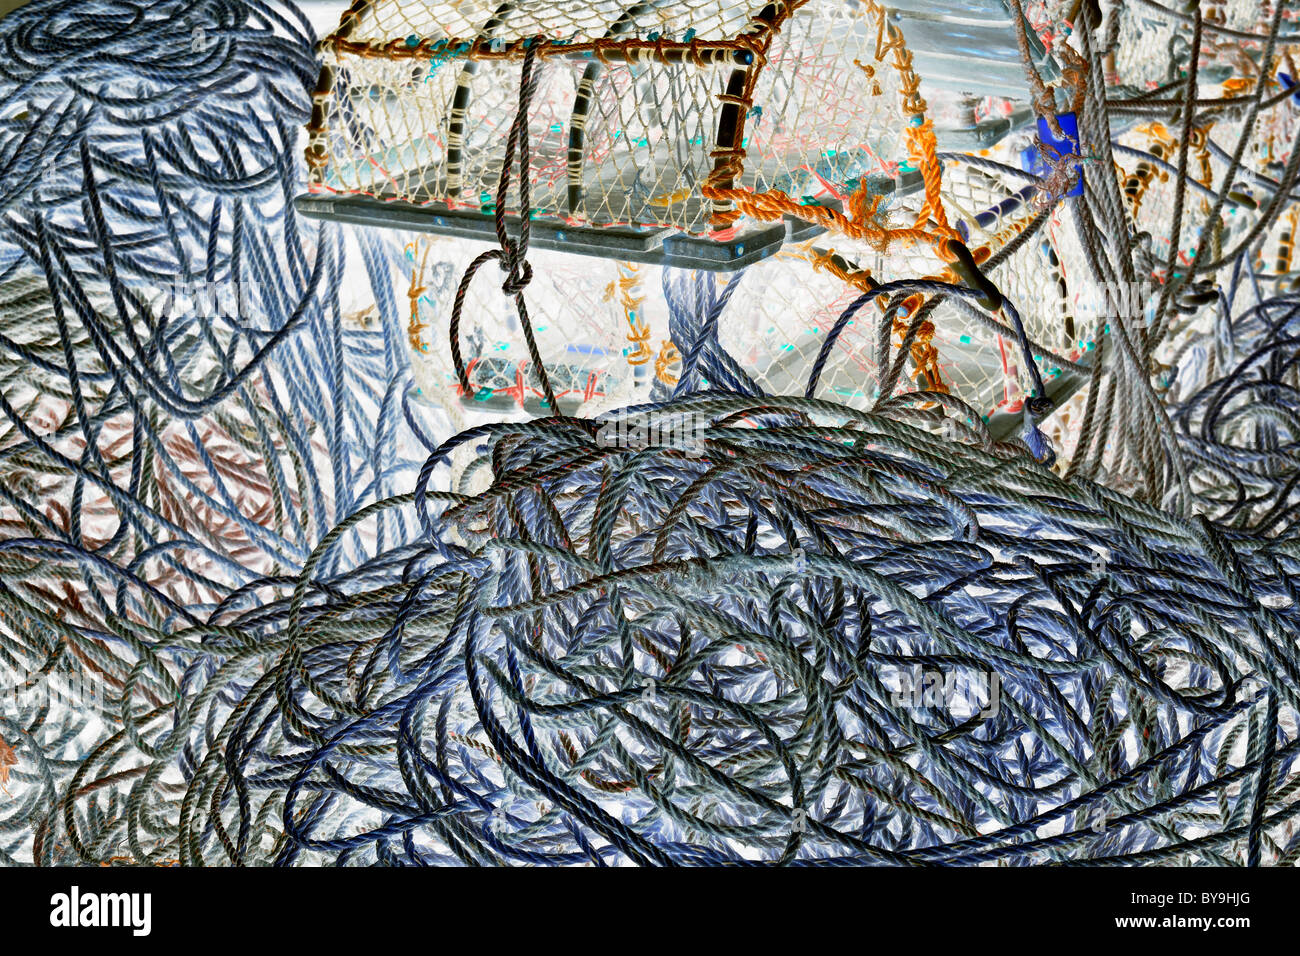 Digitally manipulated image of harbour-side ropes and crab-pots - Stock Image